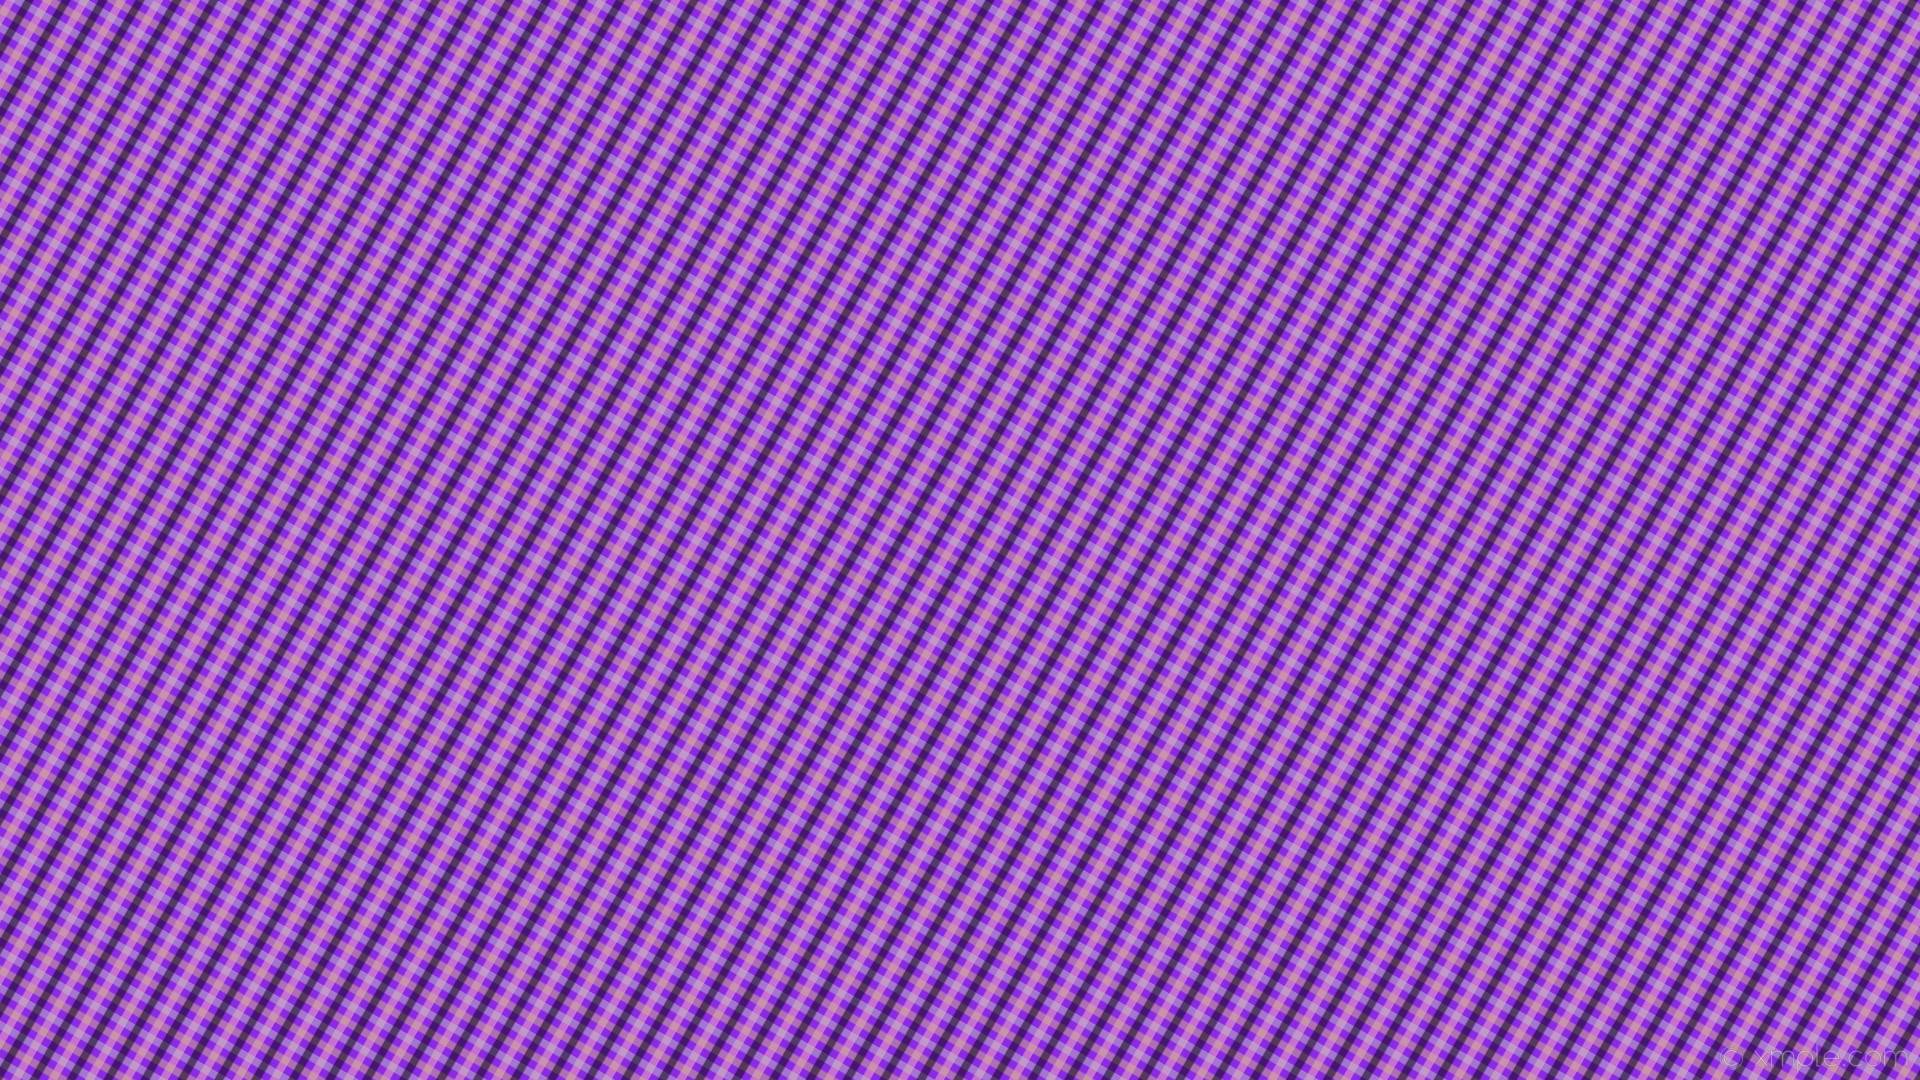 1920x1080 wallpaper purple brown striped gingham pink black grey penta blue violet  light pink silver tan #